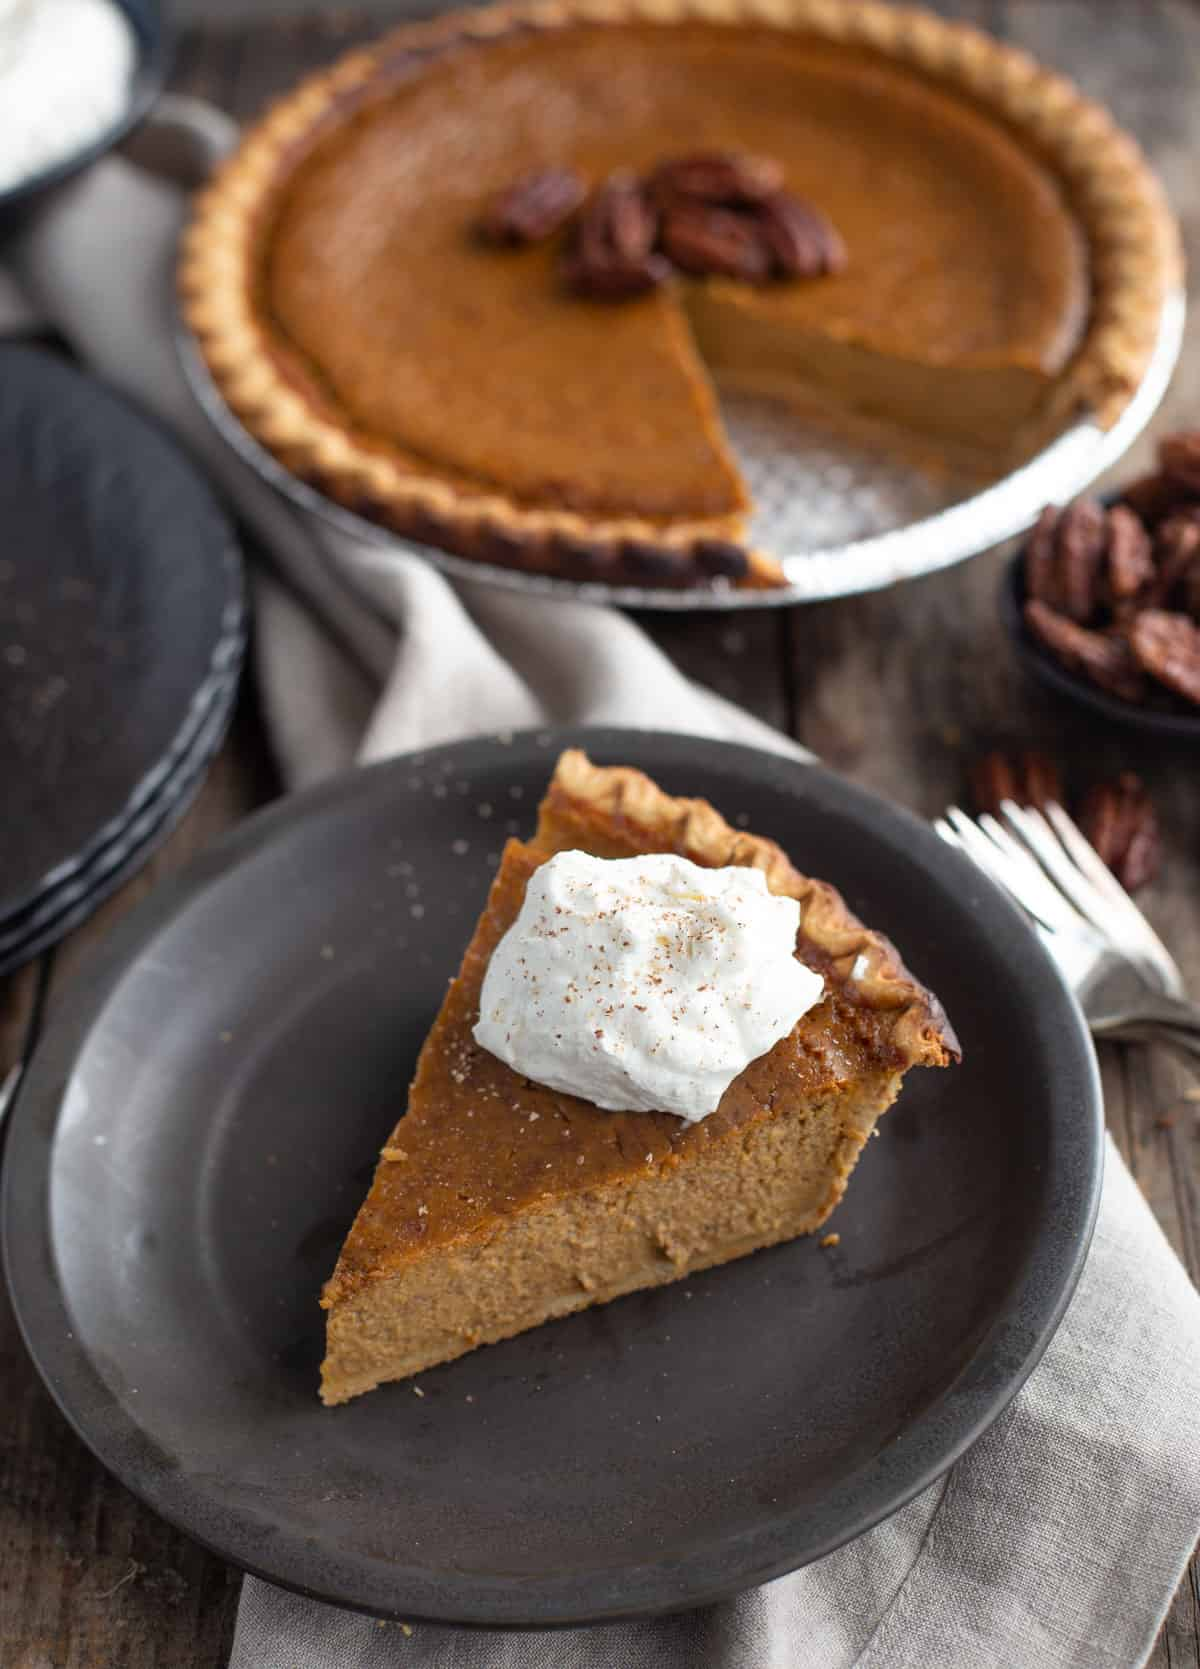 A slice of grilled pumpkin pie on a black plate